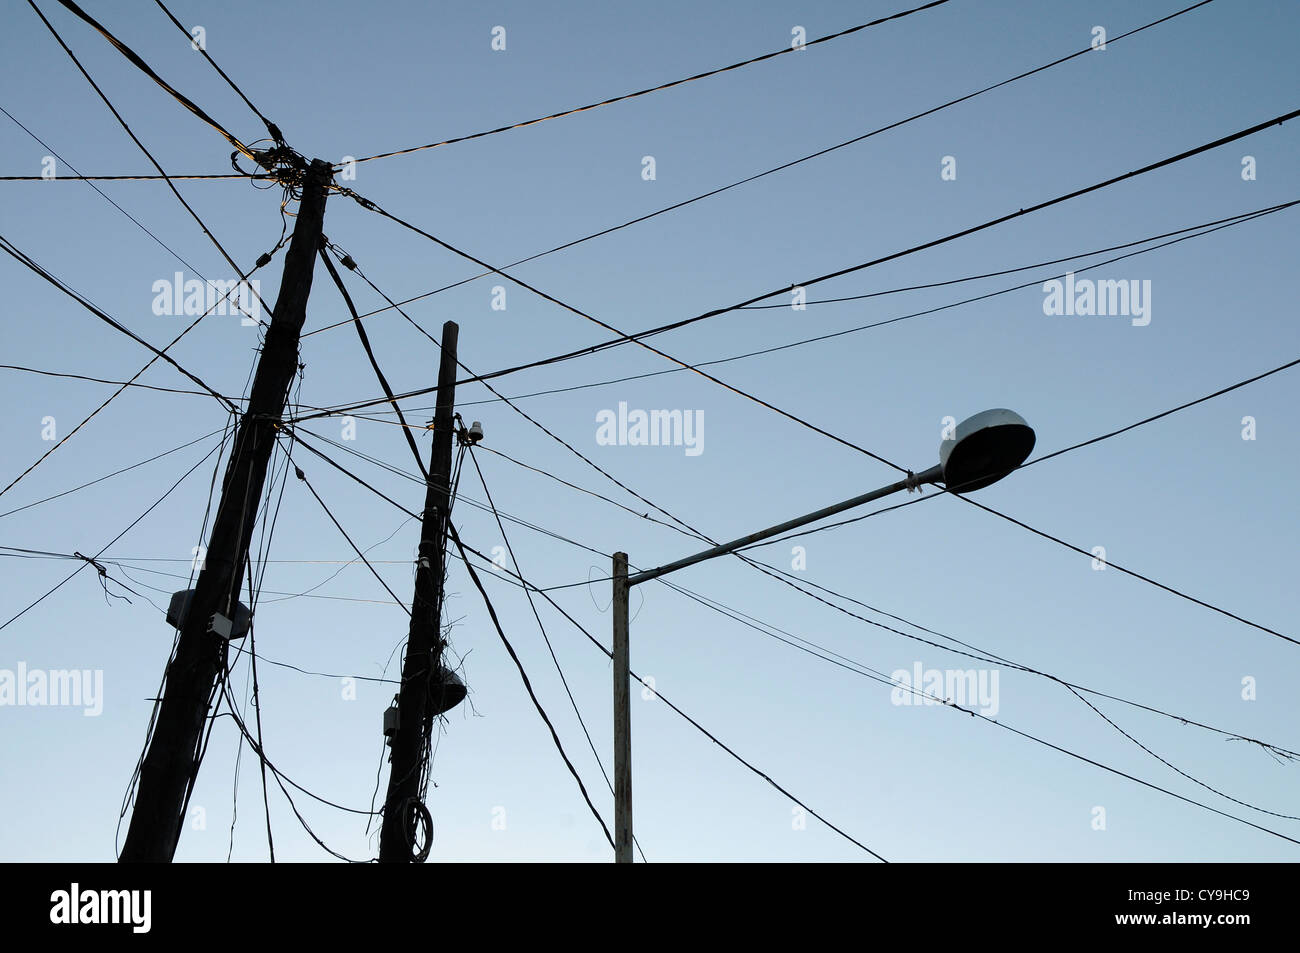 electric cables obsolete silhouette ELECTRICITY  power - Stock Image